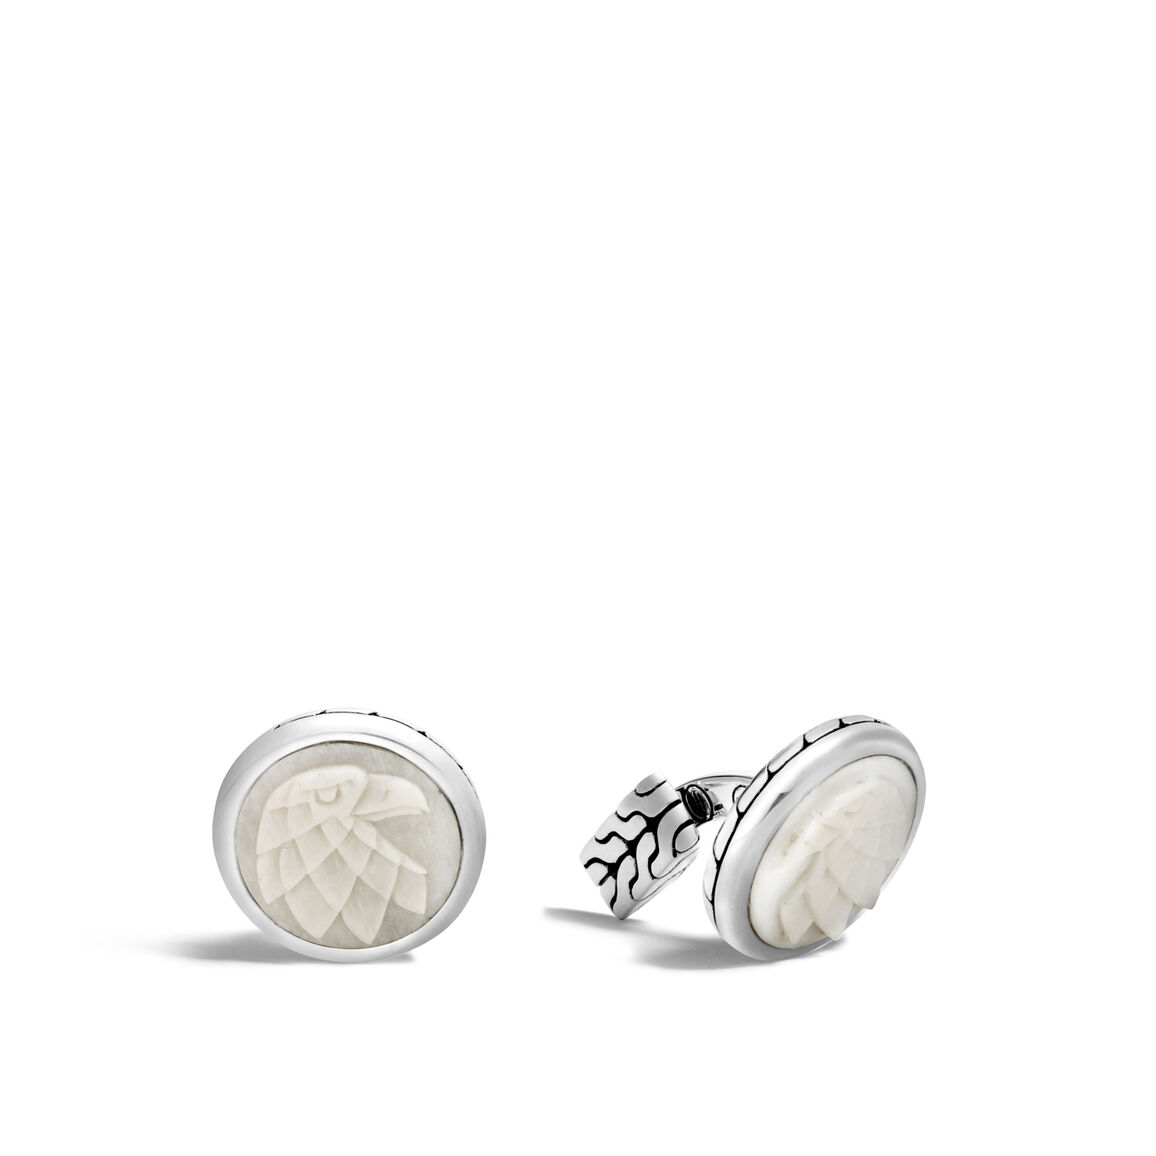 Legends Eagle  Cufflinks in Silver with Carved Bone